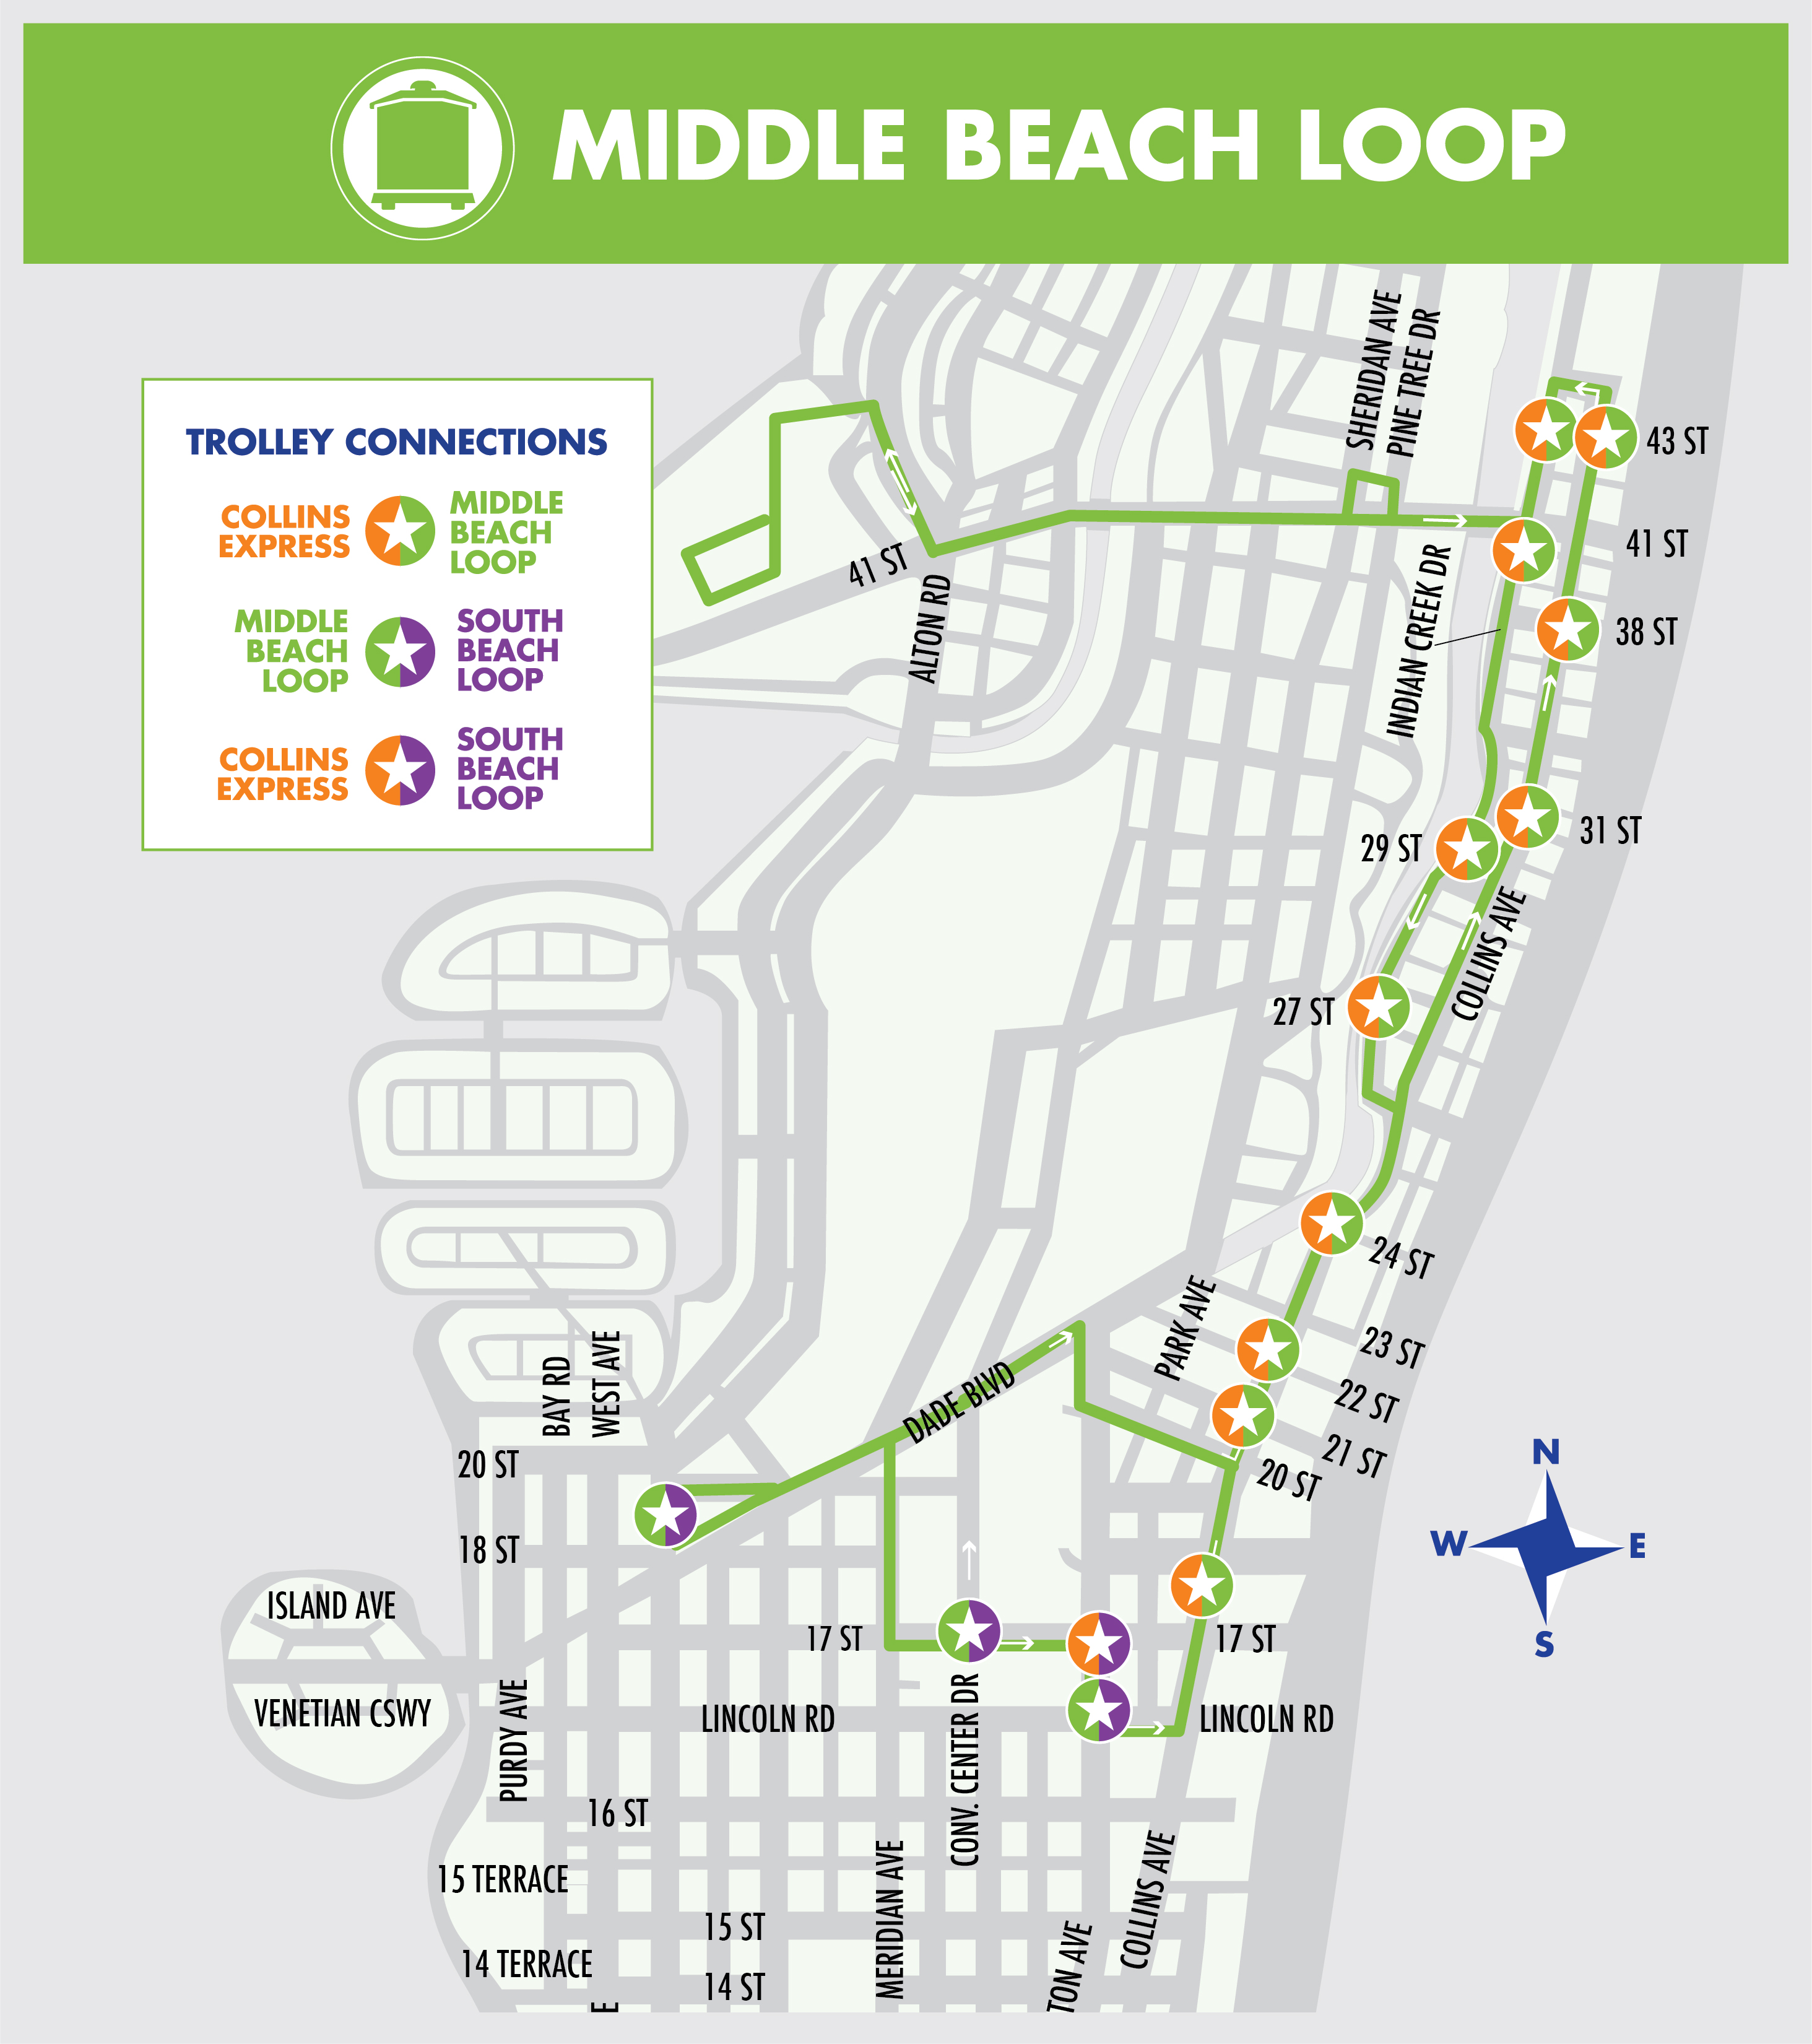 middle beach loop | city of miami beach